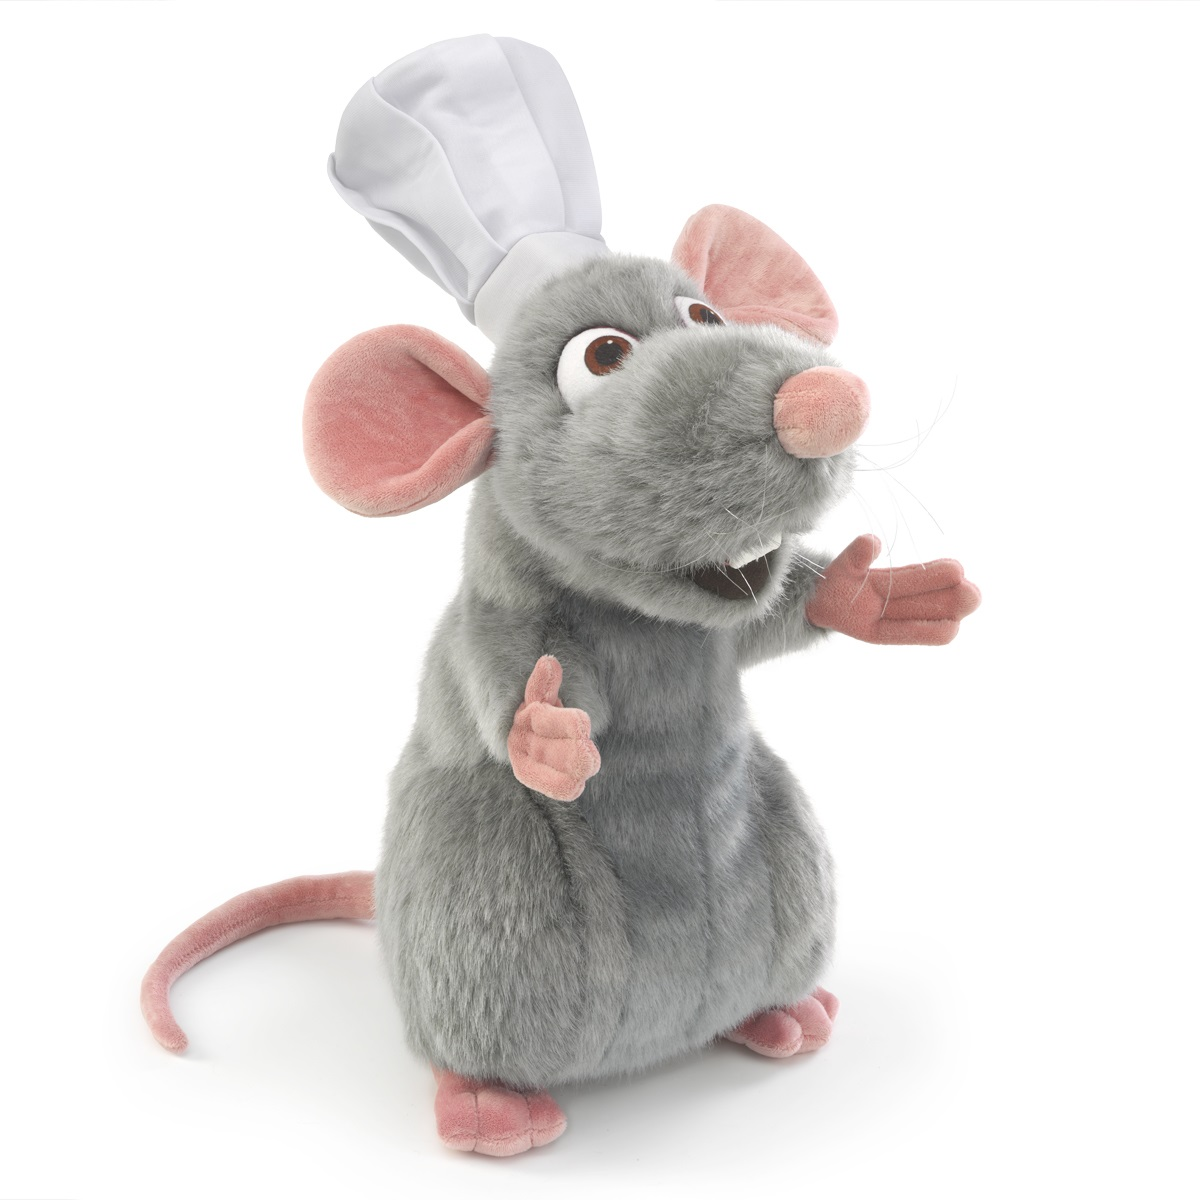 Disney Pixar Remy Mouse Hand Puppet by Folkmanis 5020